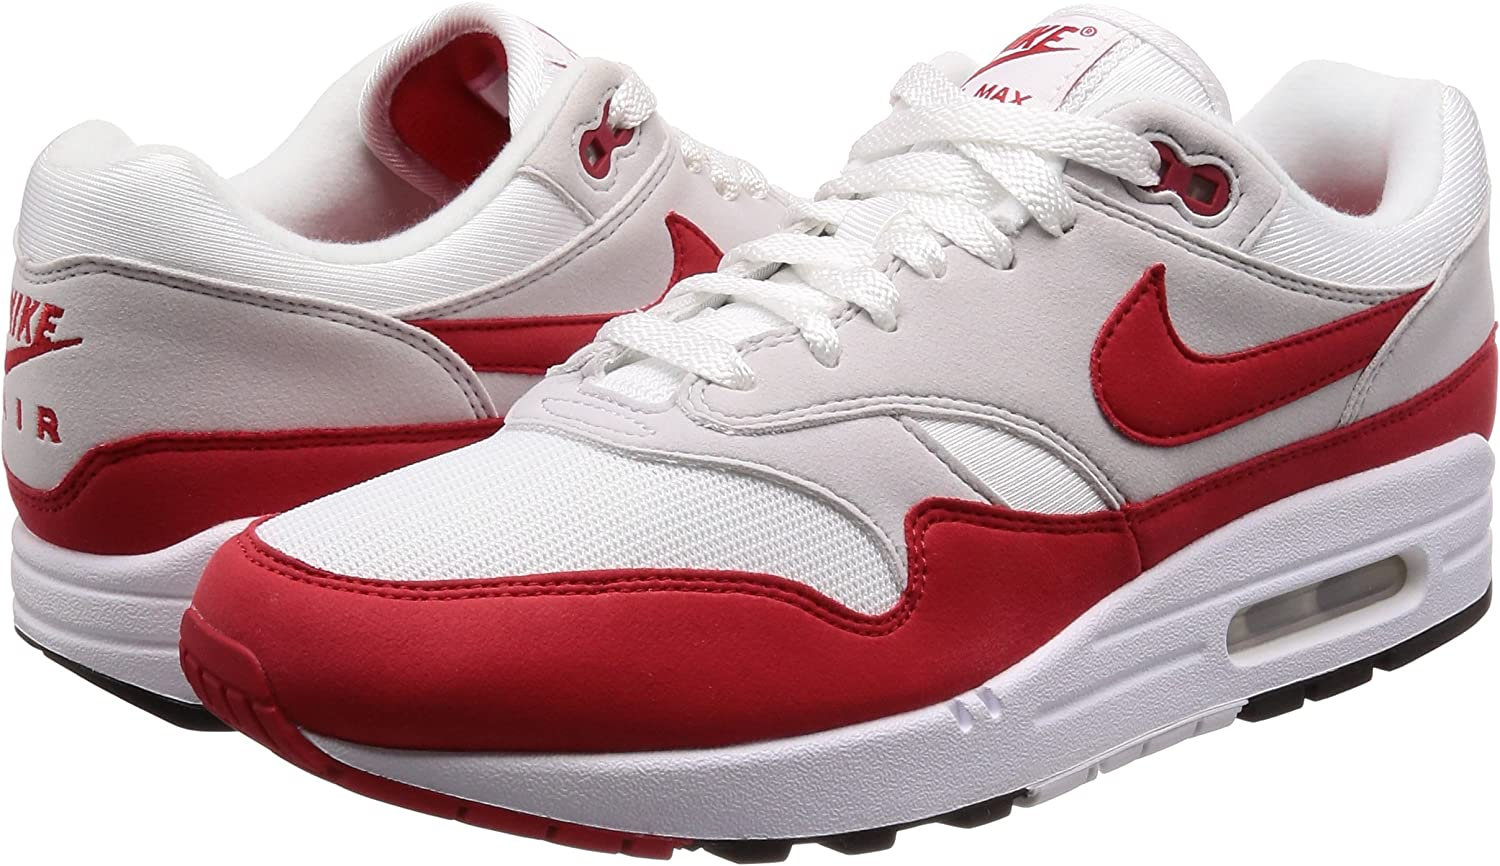 Nike Air Max 1 Anniversary Mens Running Trainers 908375 Sneakers Shoes